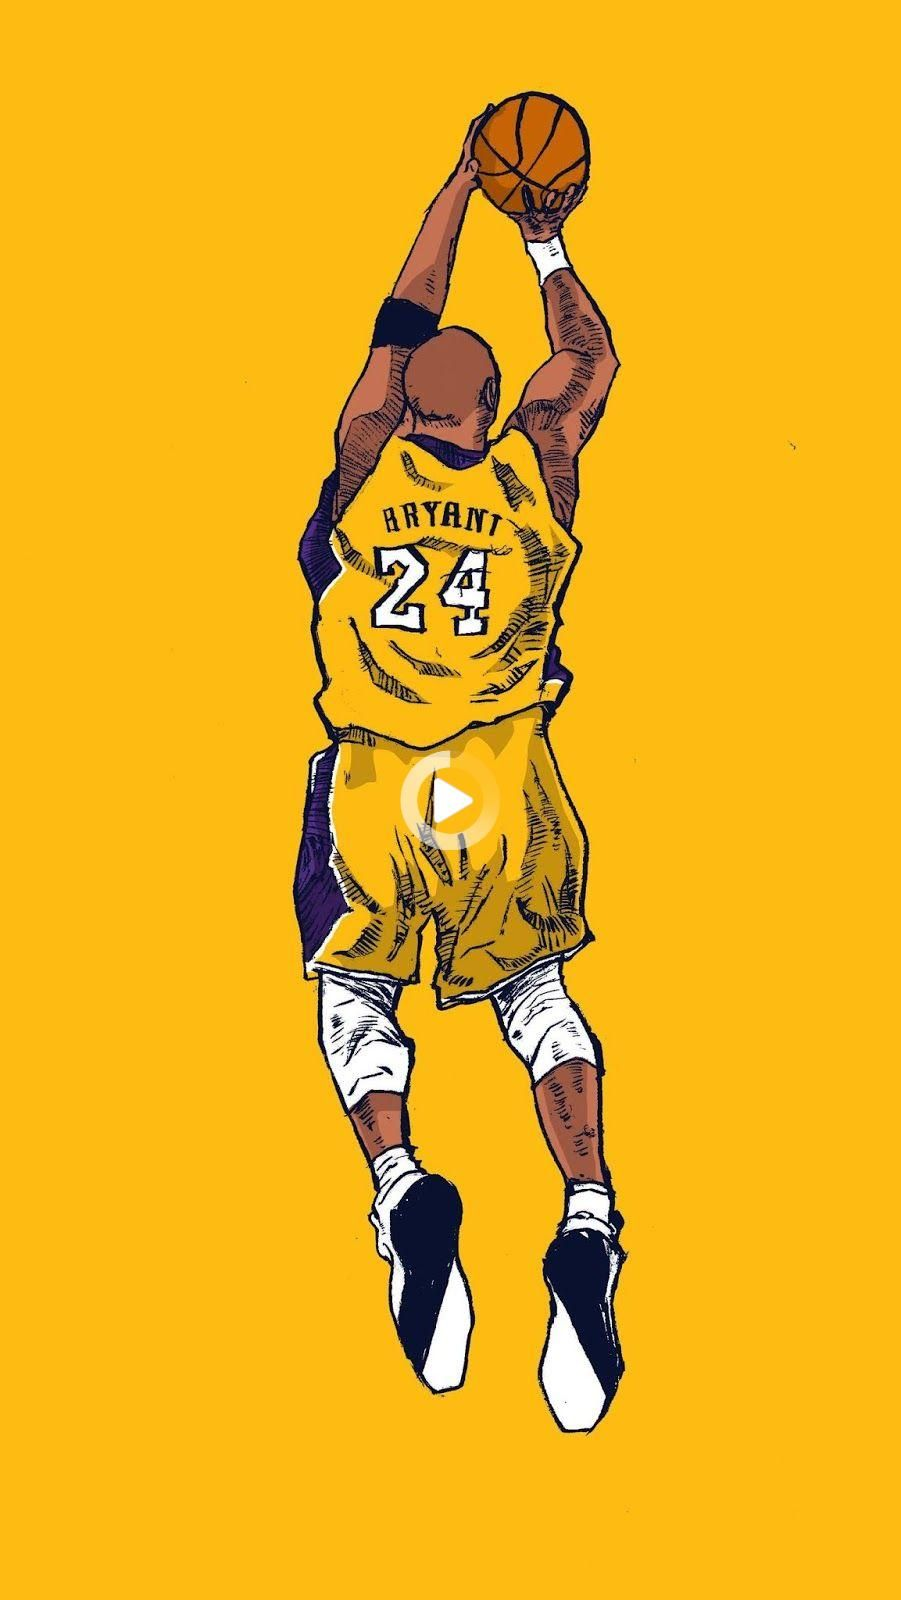 2020 Wallpapers Best Wallpapers Collection Iphone Wallpapers Backgrounds Kobe Bryant Wallpaper Kobe Bryant Poster Kobe Bryant Tattoos